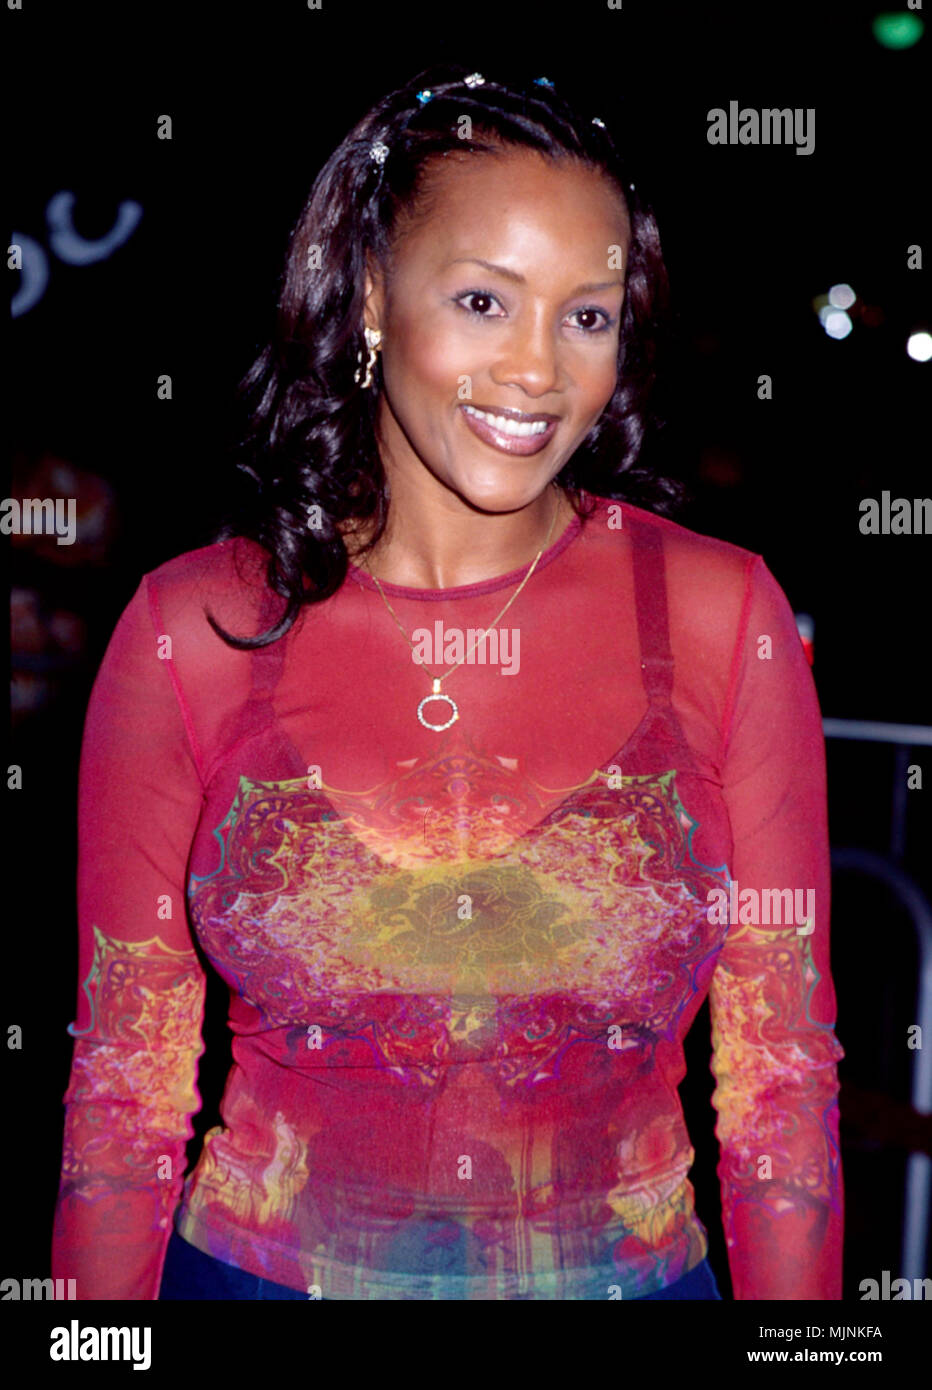 Vivica Fox at The Best Man Premiere --- ' Tsuni / - 'Vivica Fox  Vivica Fox  one person, Vertical, Best of, Hollywood Life, Event in Hollywood Life - California,  Red Carpet Event, Vertical, USA, Film Industry, Celebrities,  Photography, Bestof, Arts Culture and Entertainment, , , Topix - Stock Image